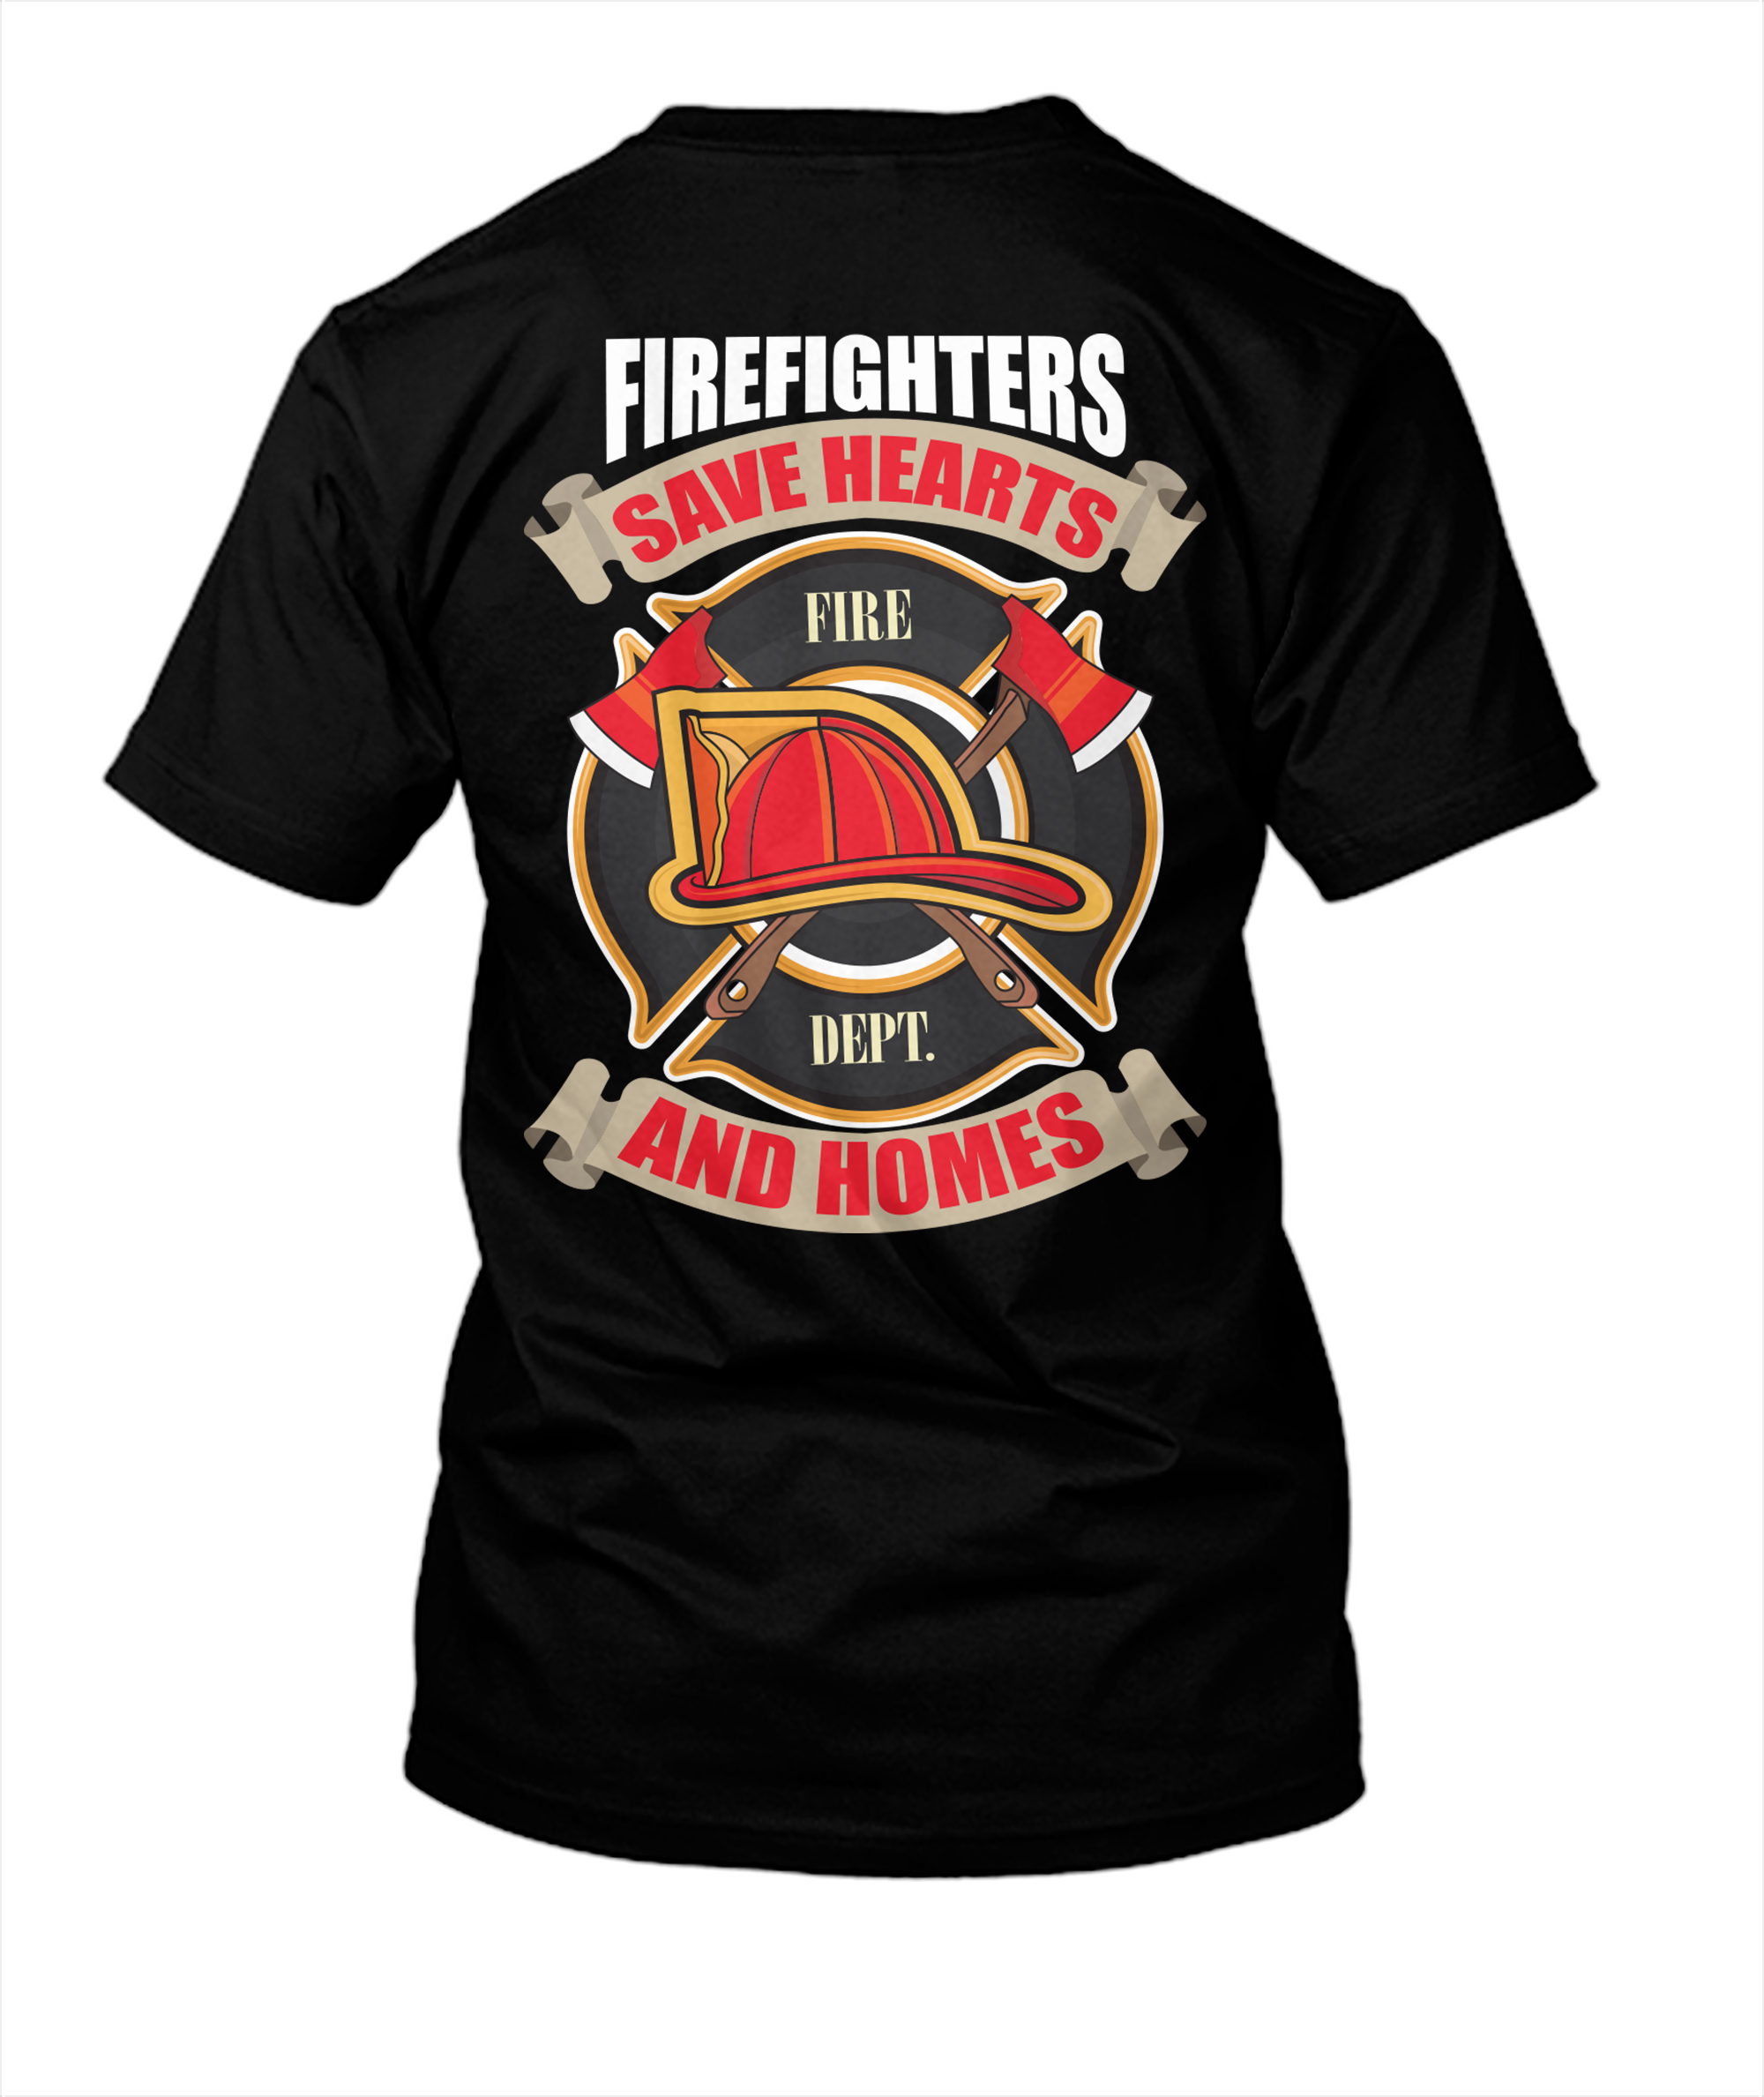 create any type of t-shirt design,Teespring t-shirt design,Poster design,Logo design